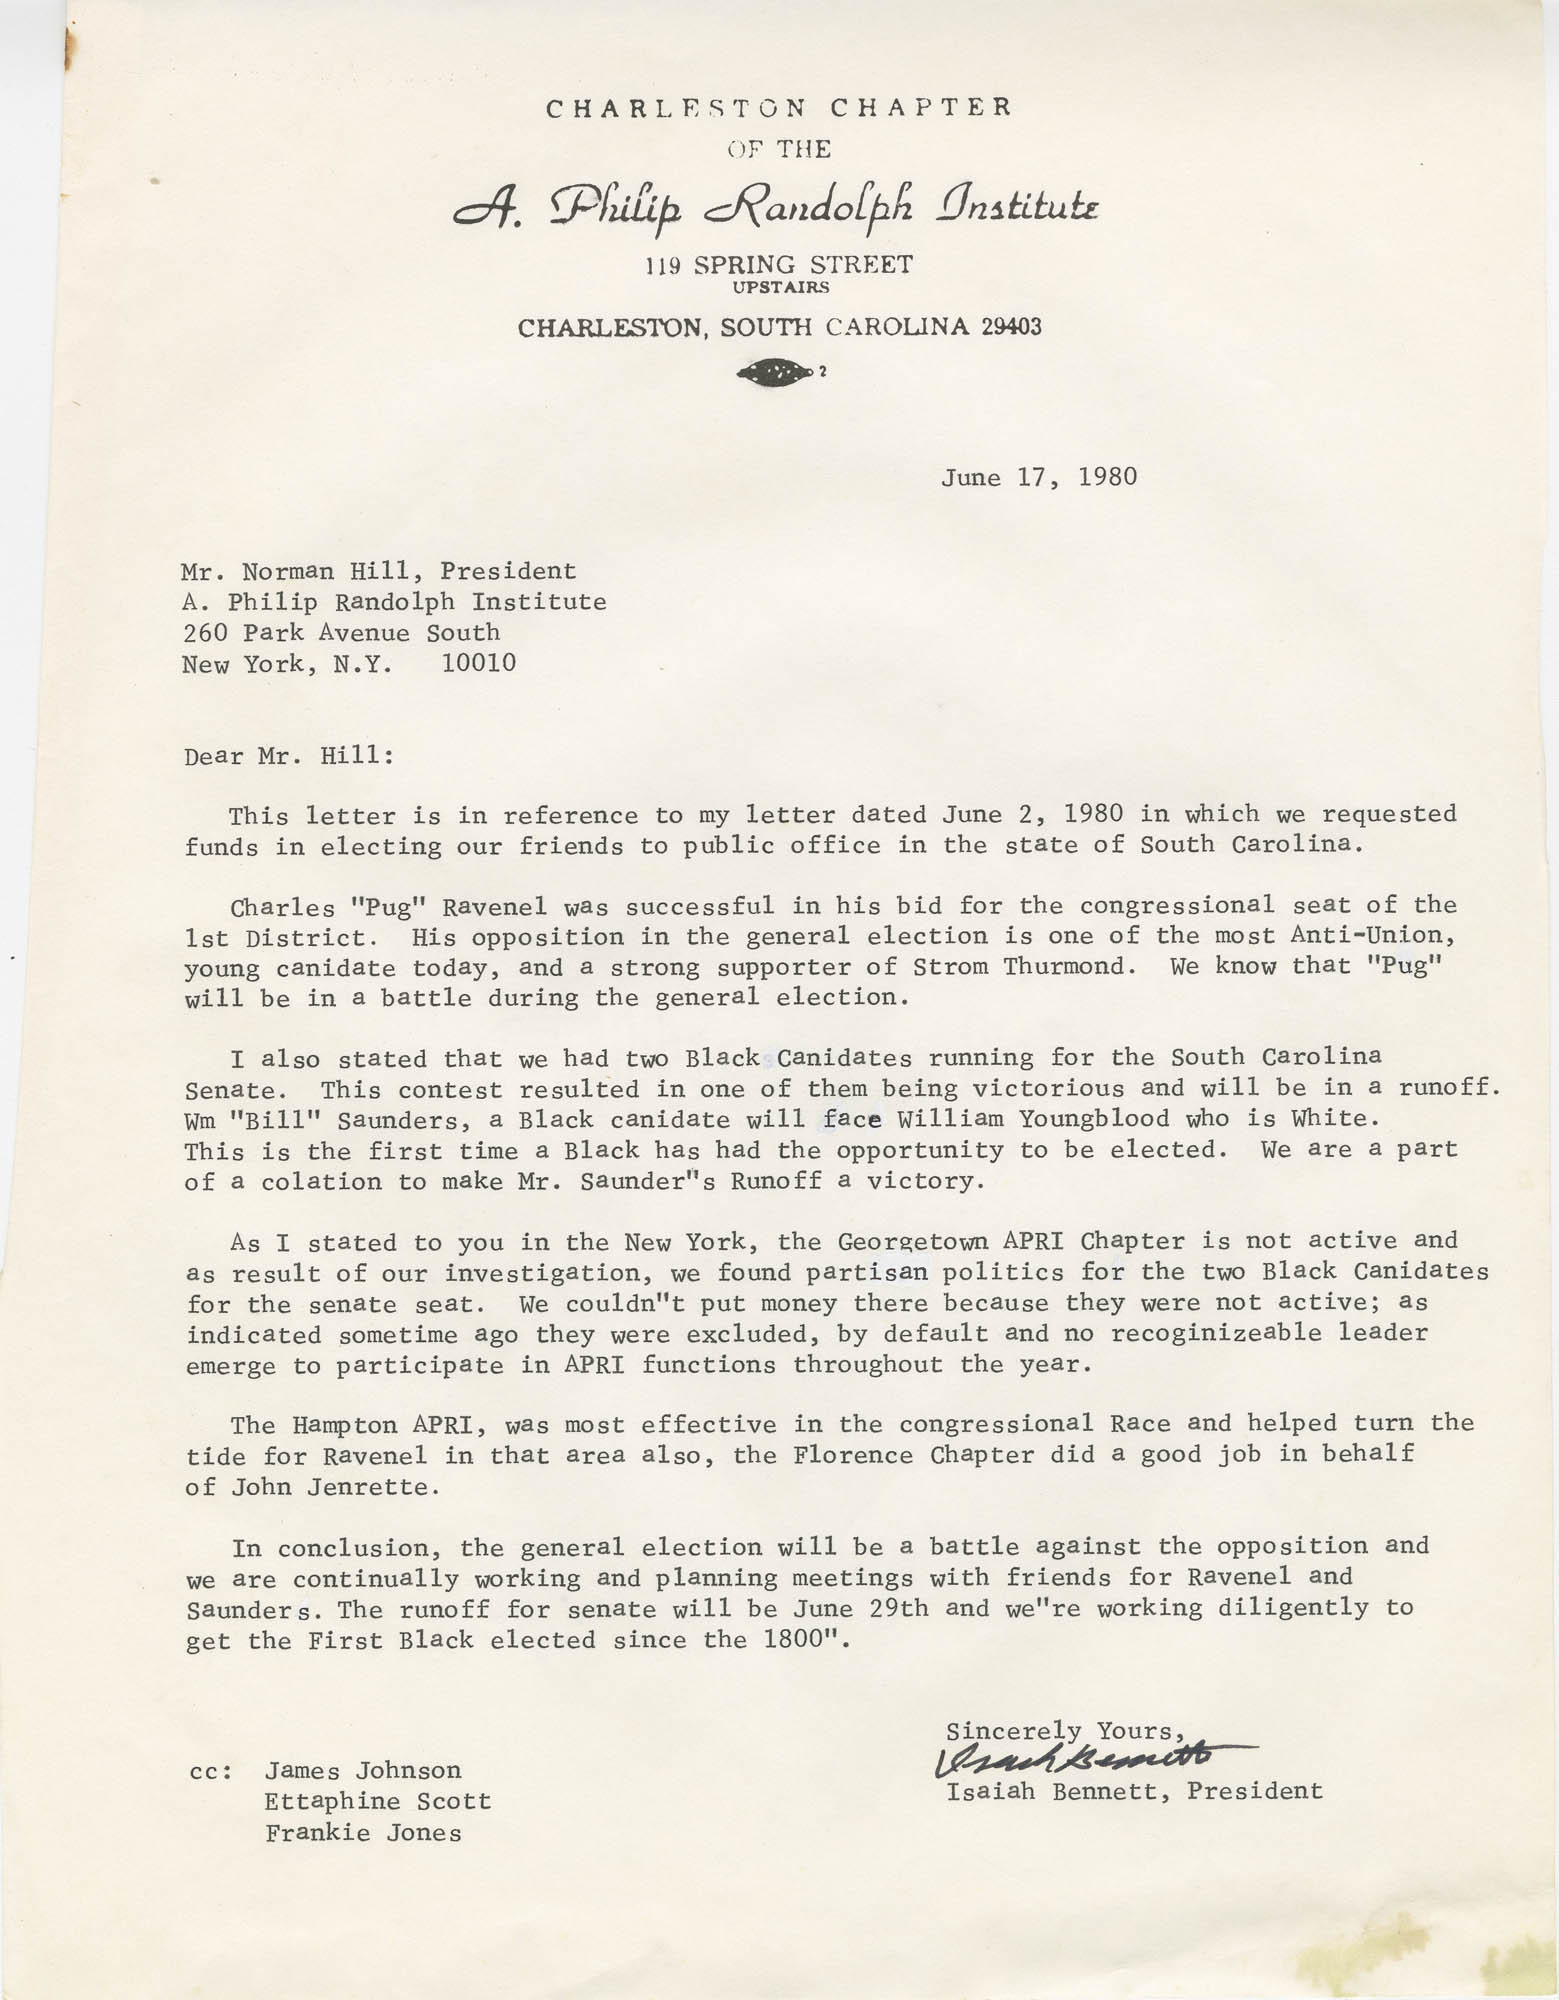 Letter from Isaiah Bennett to Norman Hill, President of A. Philip Randolph Institute, detailing South Carolina chapter political activities